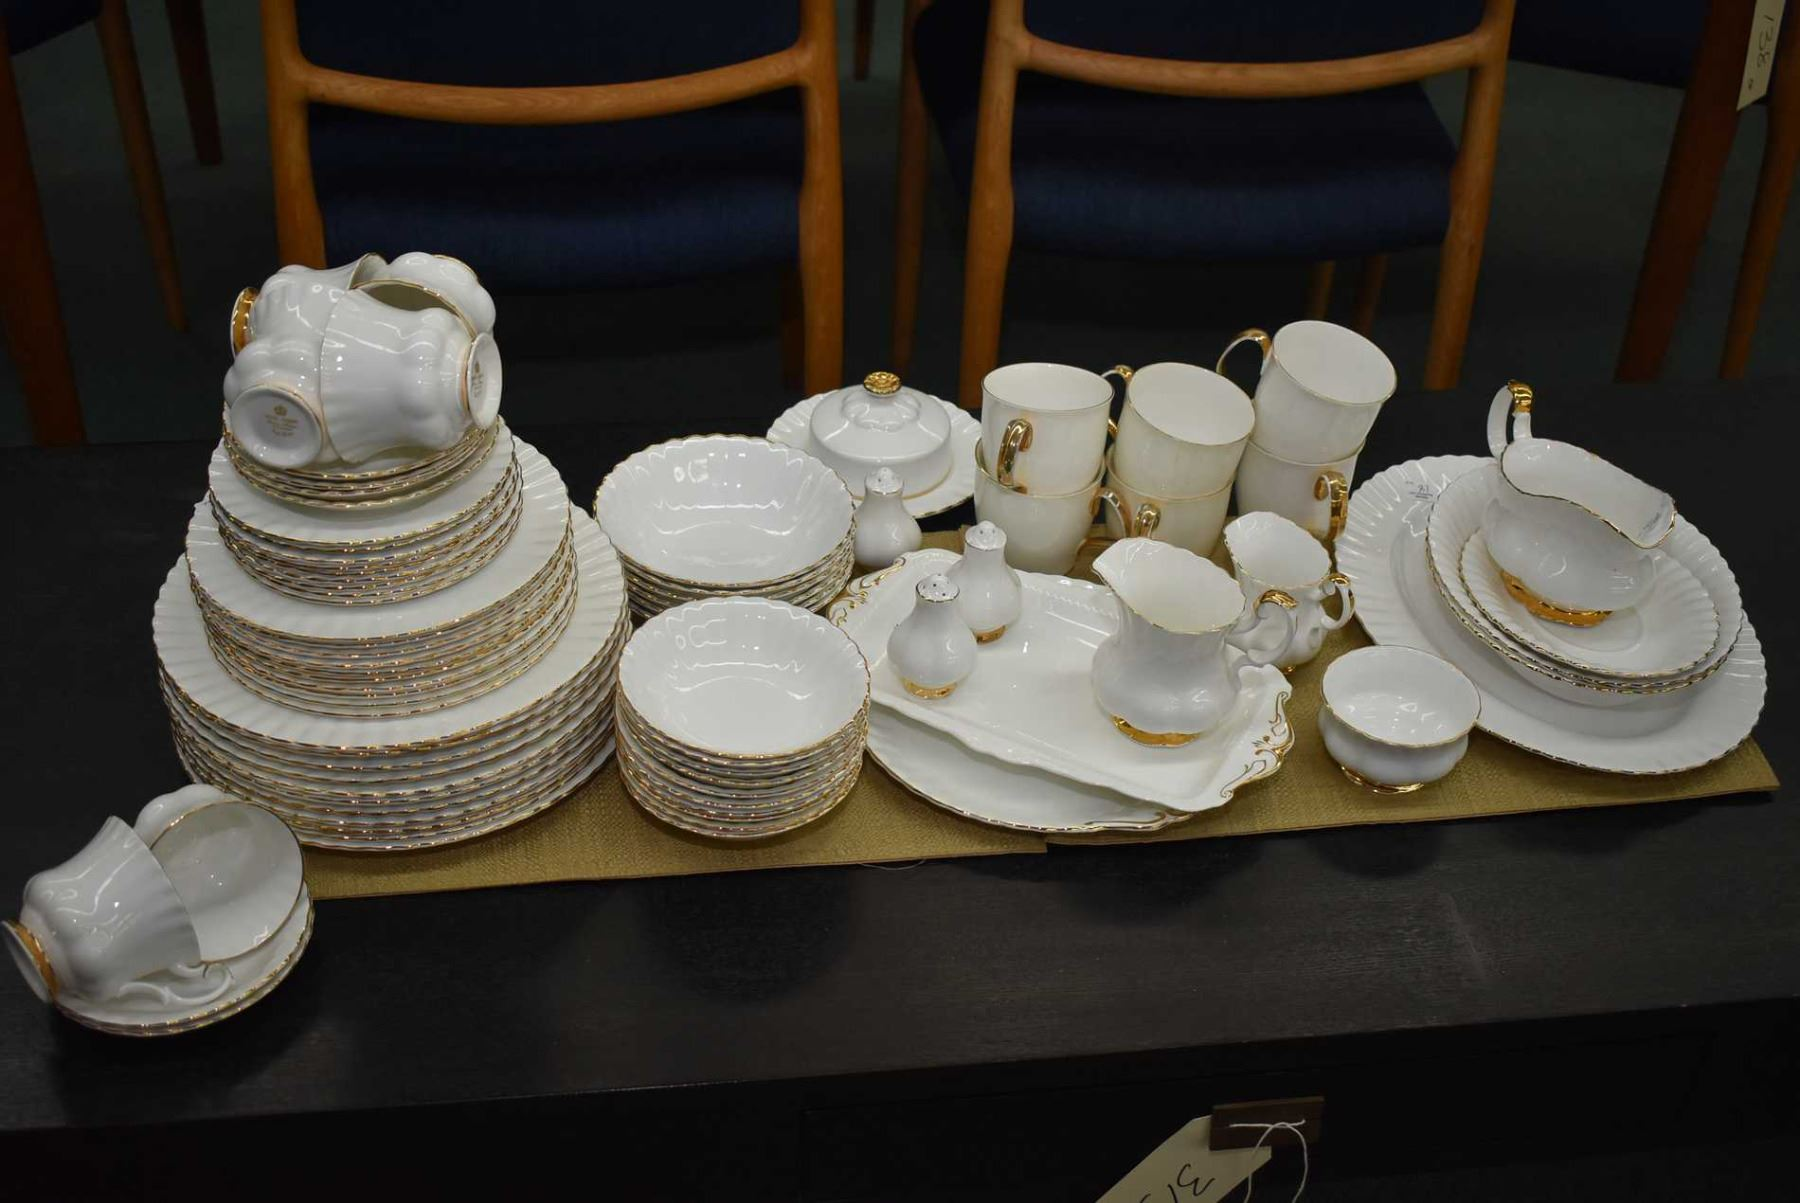 20 Piece Set of Royal Albert Val D/'or China Dinner Plate,Salad Plate,Bread and Butter Plate Teacup and Saucer